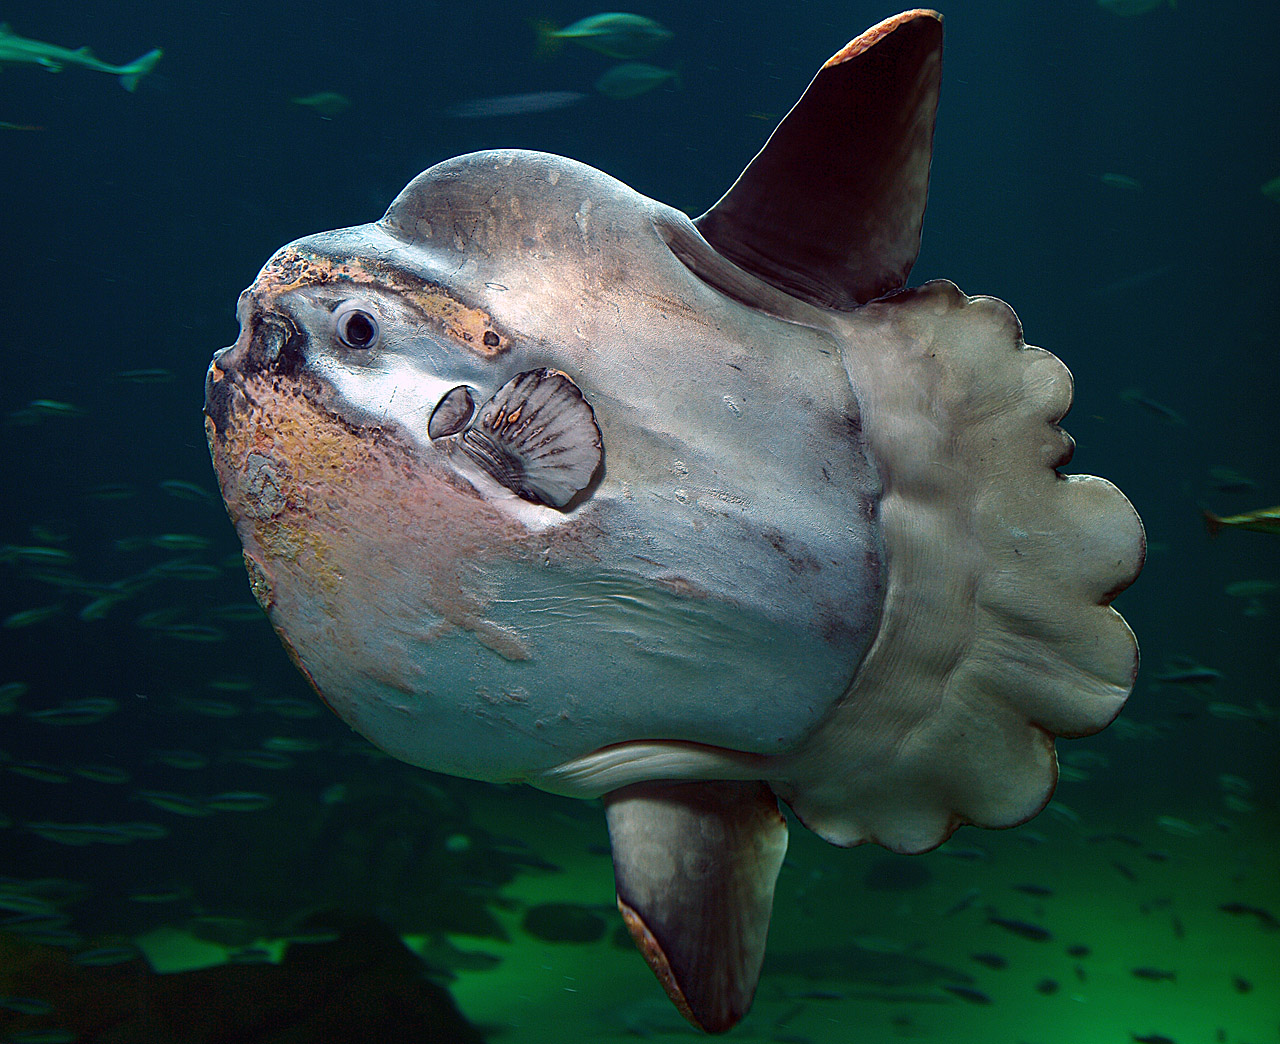 ocean sunfish, common mola (Mola mola); Image ONLY